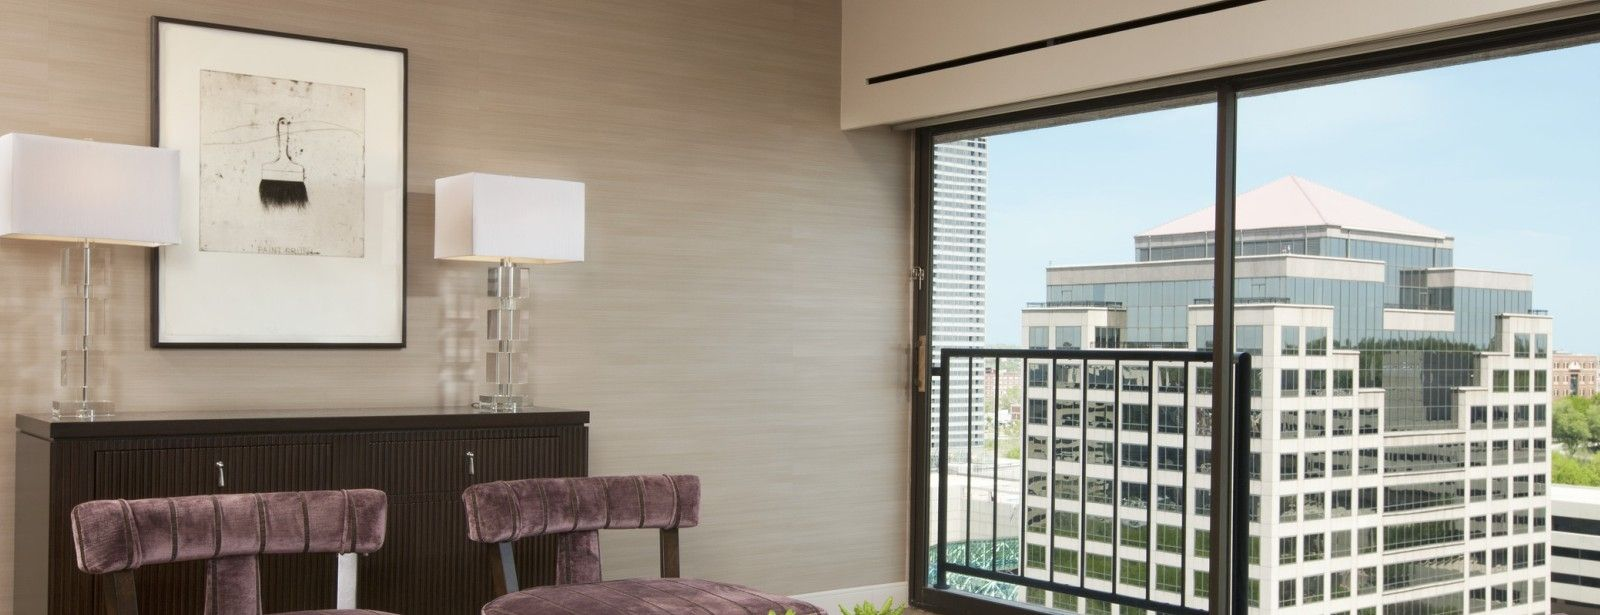 Kansas city suites | The Westin Kansas City Hotel at Crown Center